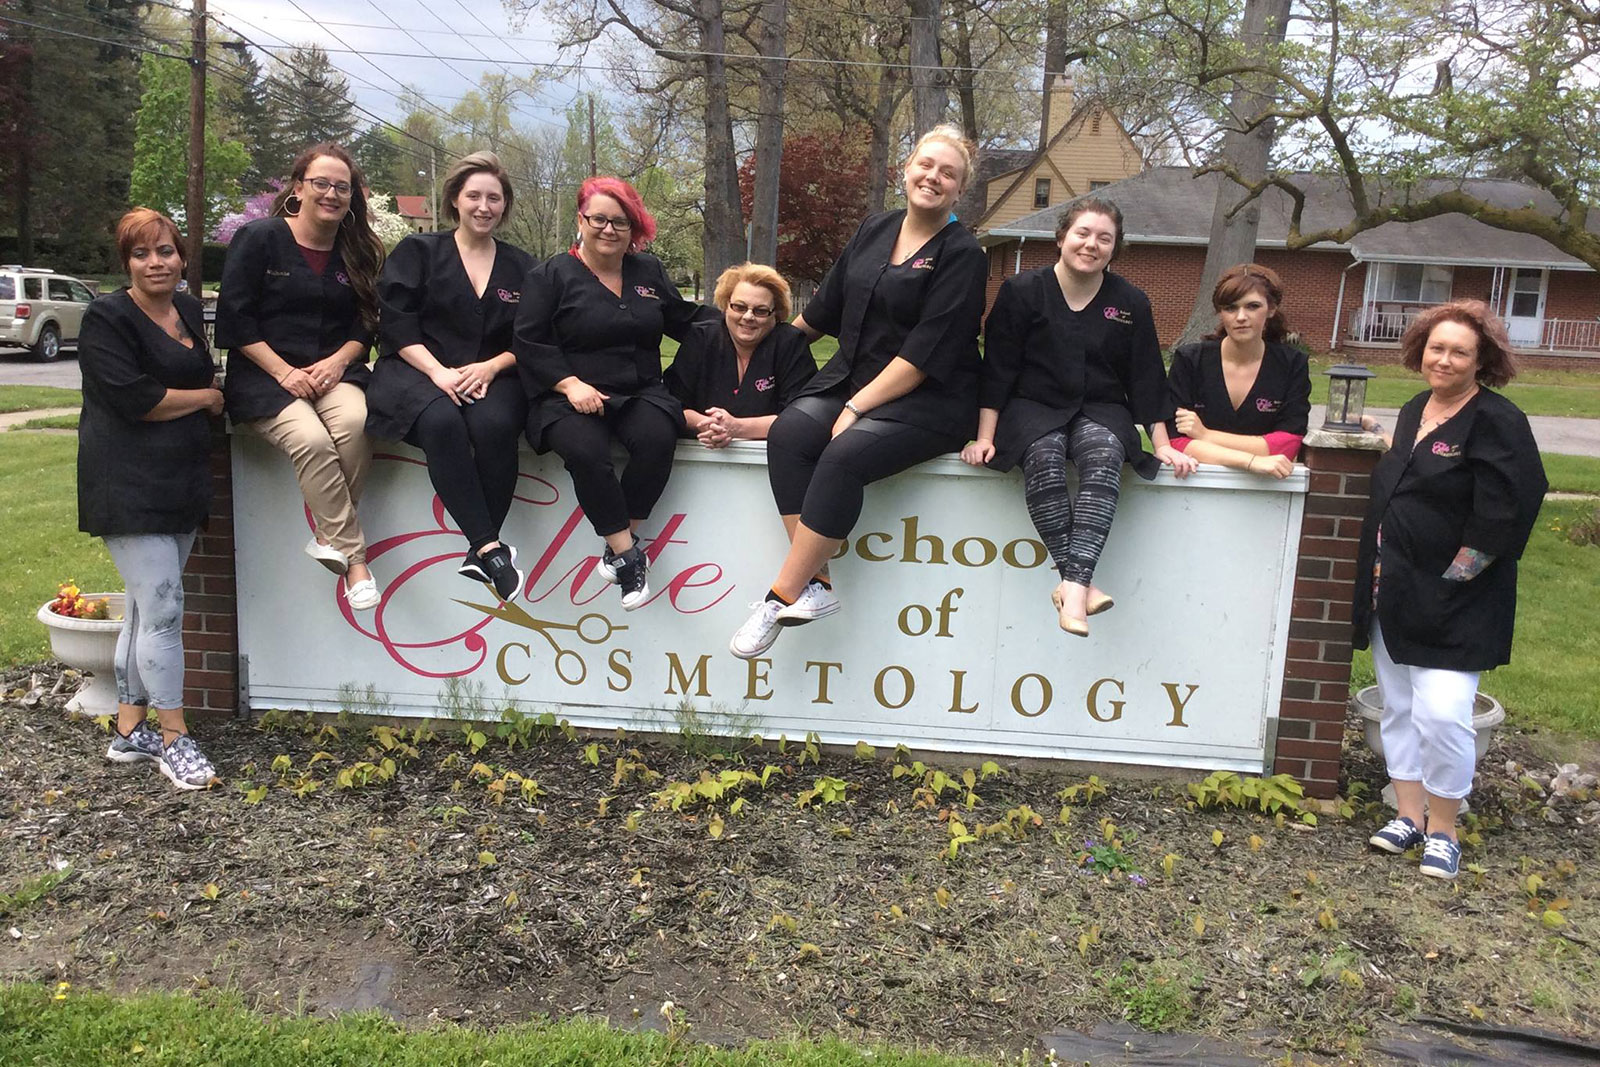 Elite School of Cosmetology